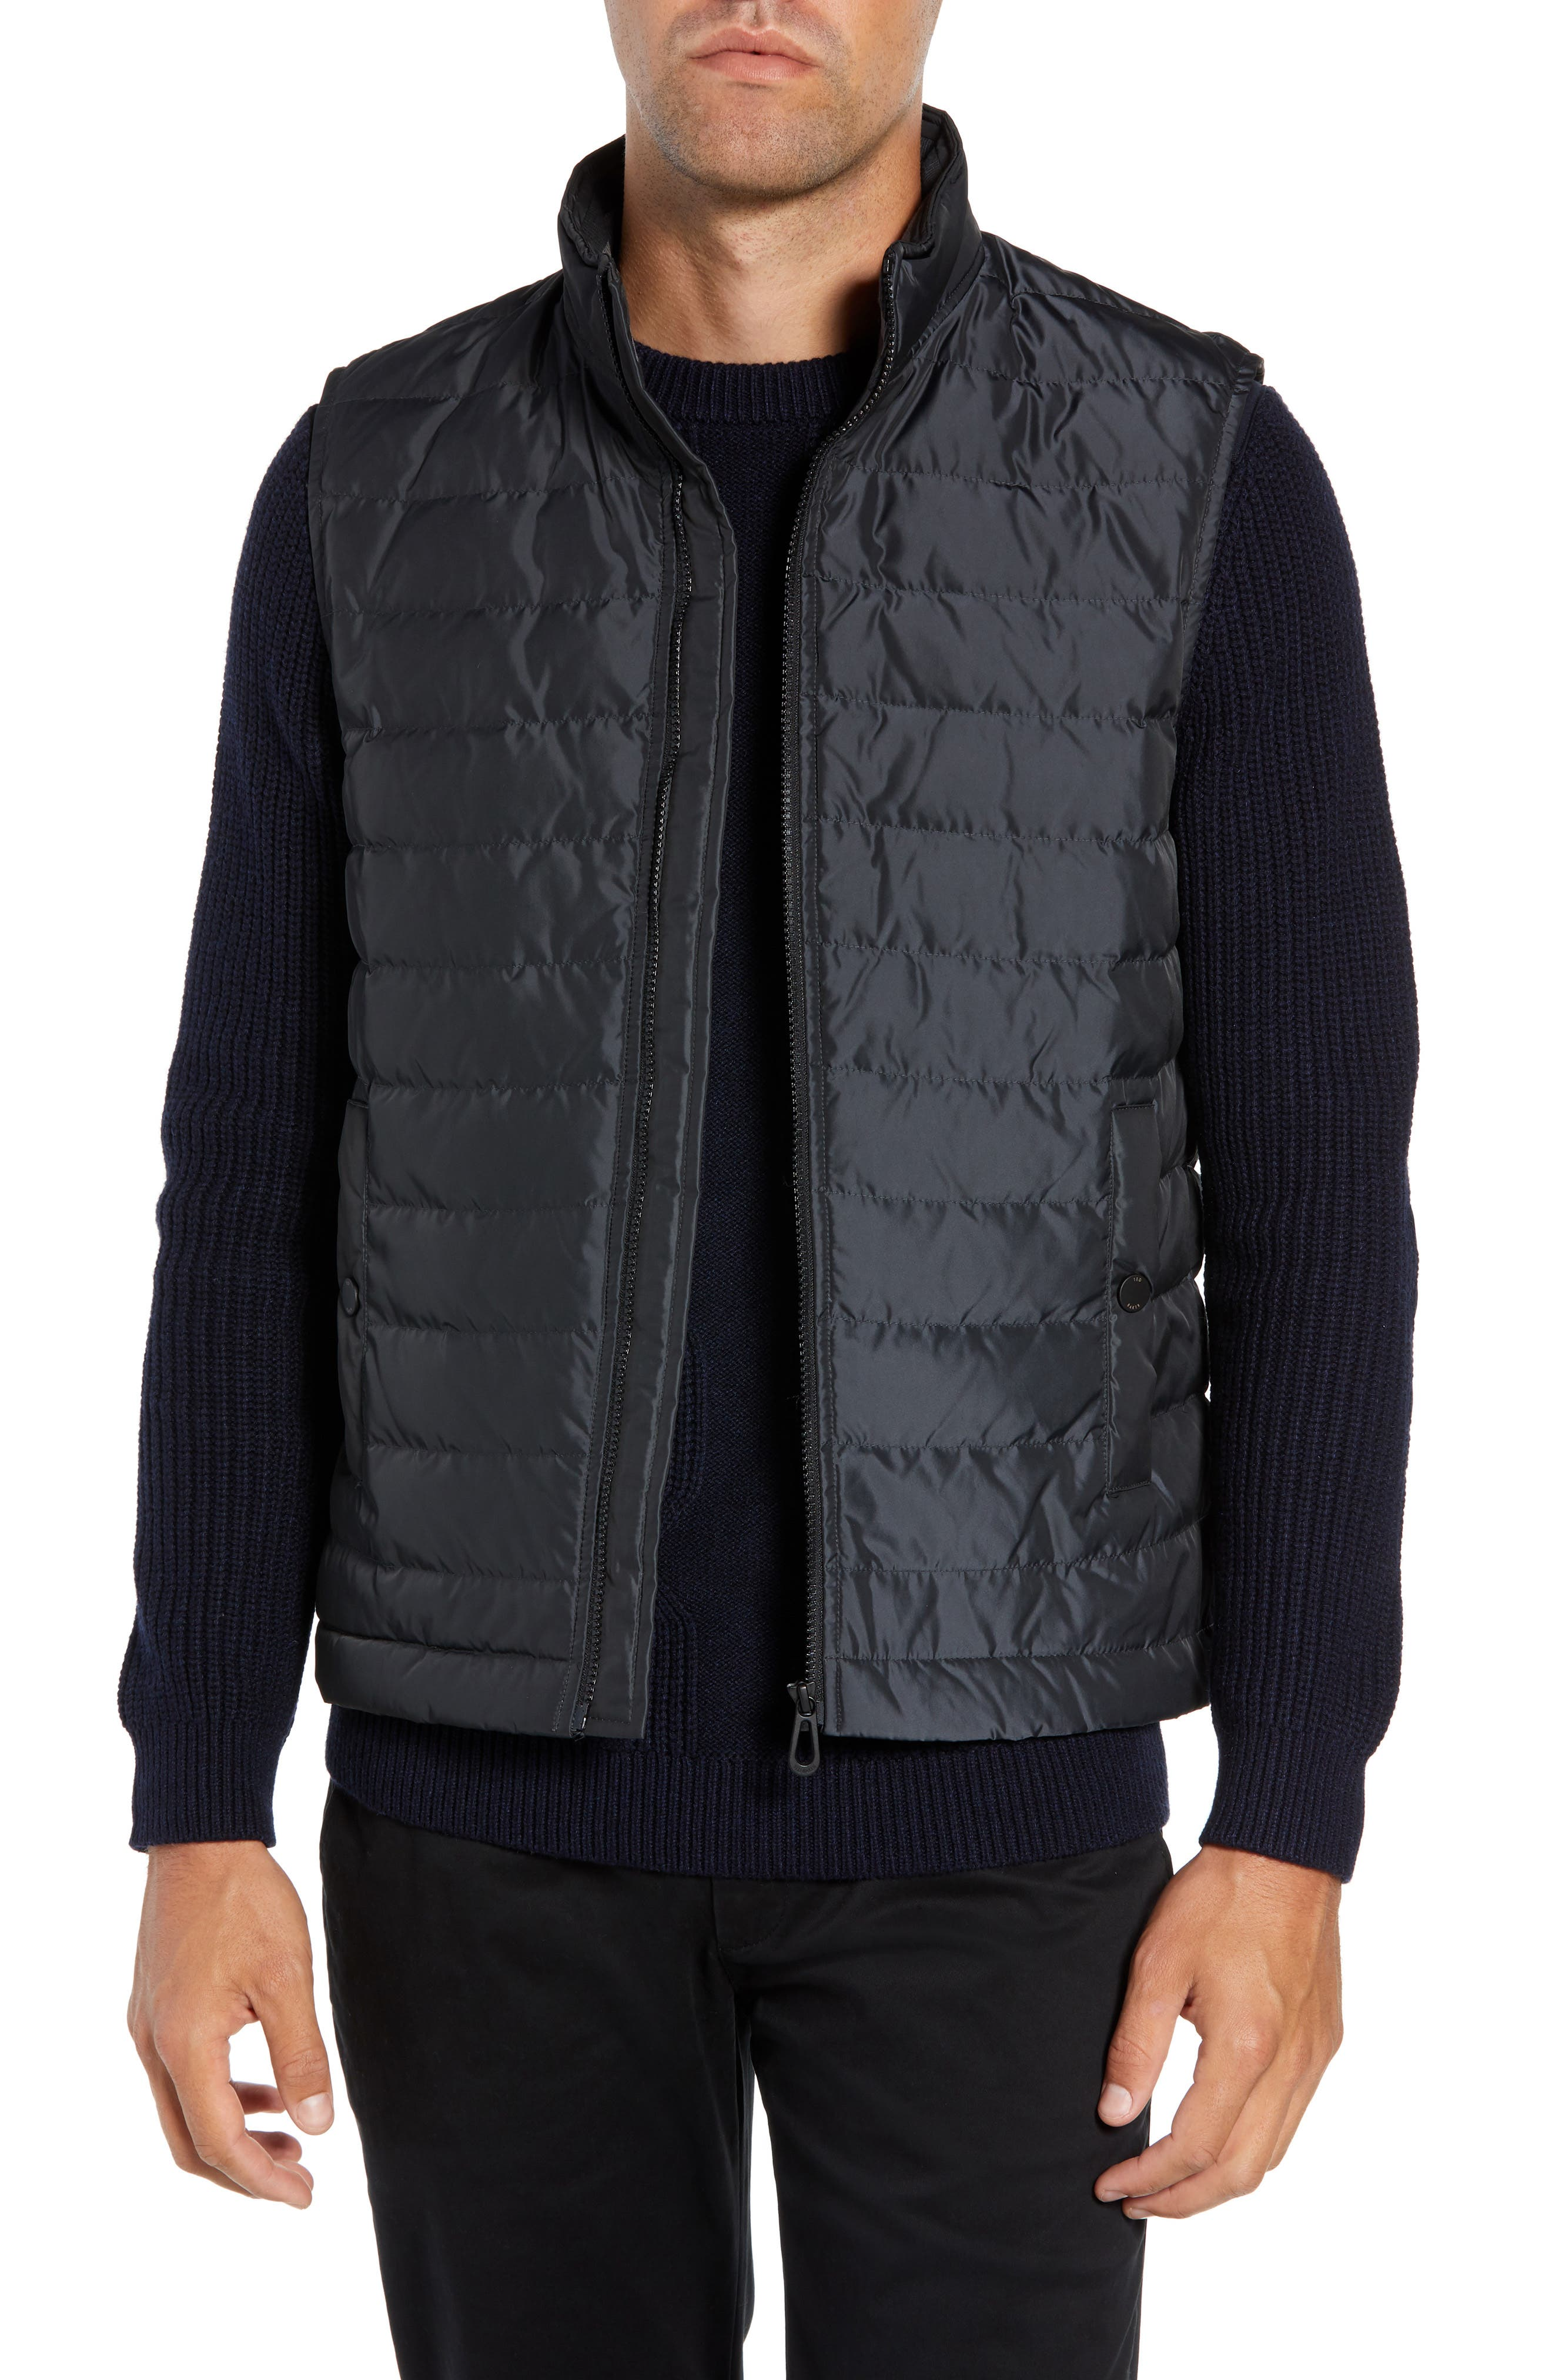 Yarg Slim Fit Quilted Vest,                             Main thumbnail 1, color,                             GREY